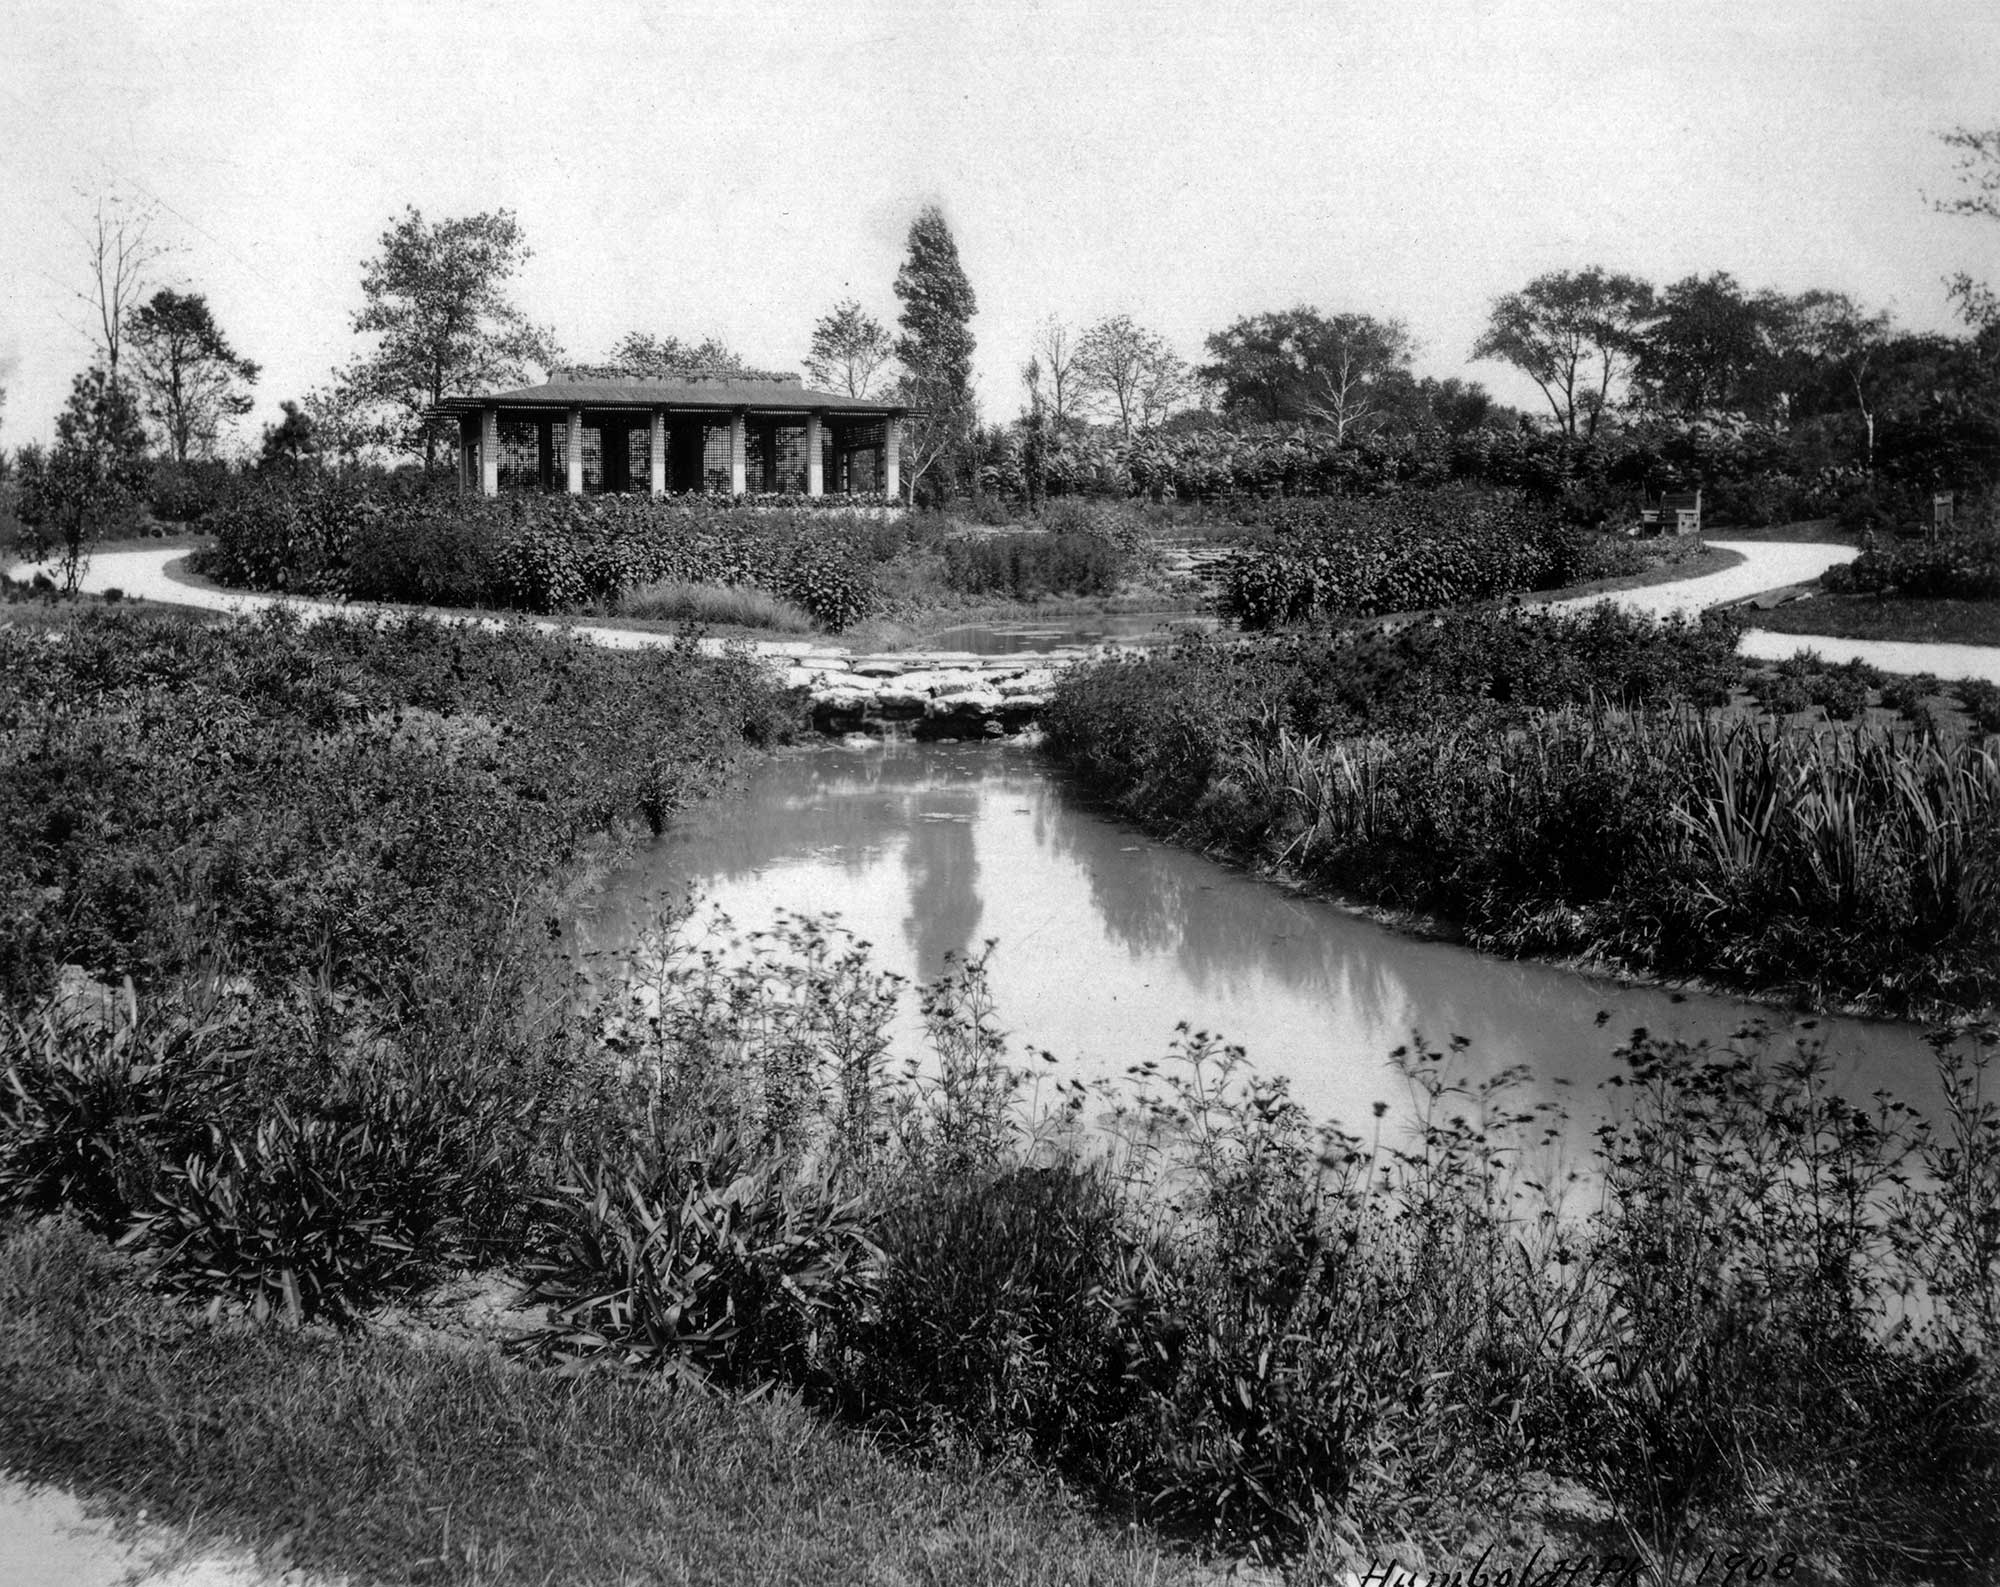 Looking northwest from the fork in Prairie River, this view shows the Japanese tea house which remained for at least 50 years. 1908, Chicago Park District Records: Photographs, Special Collections, Chicago Public Library.